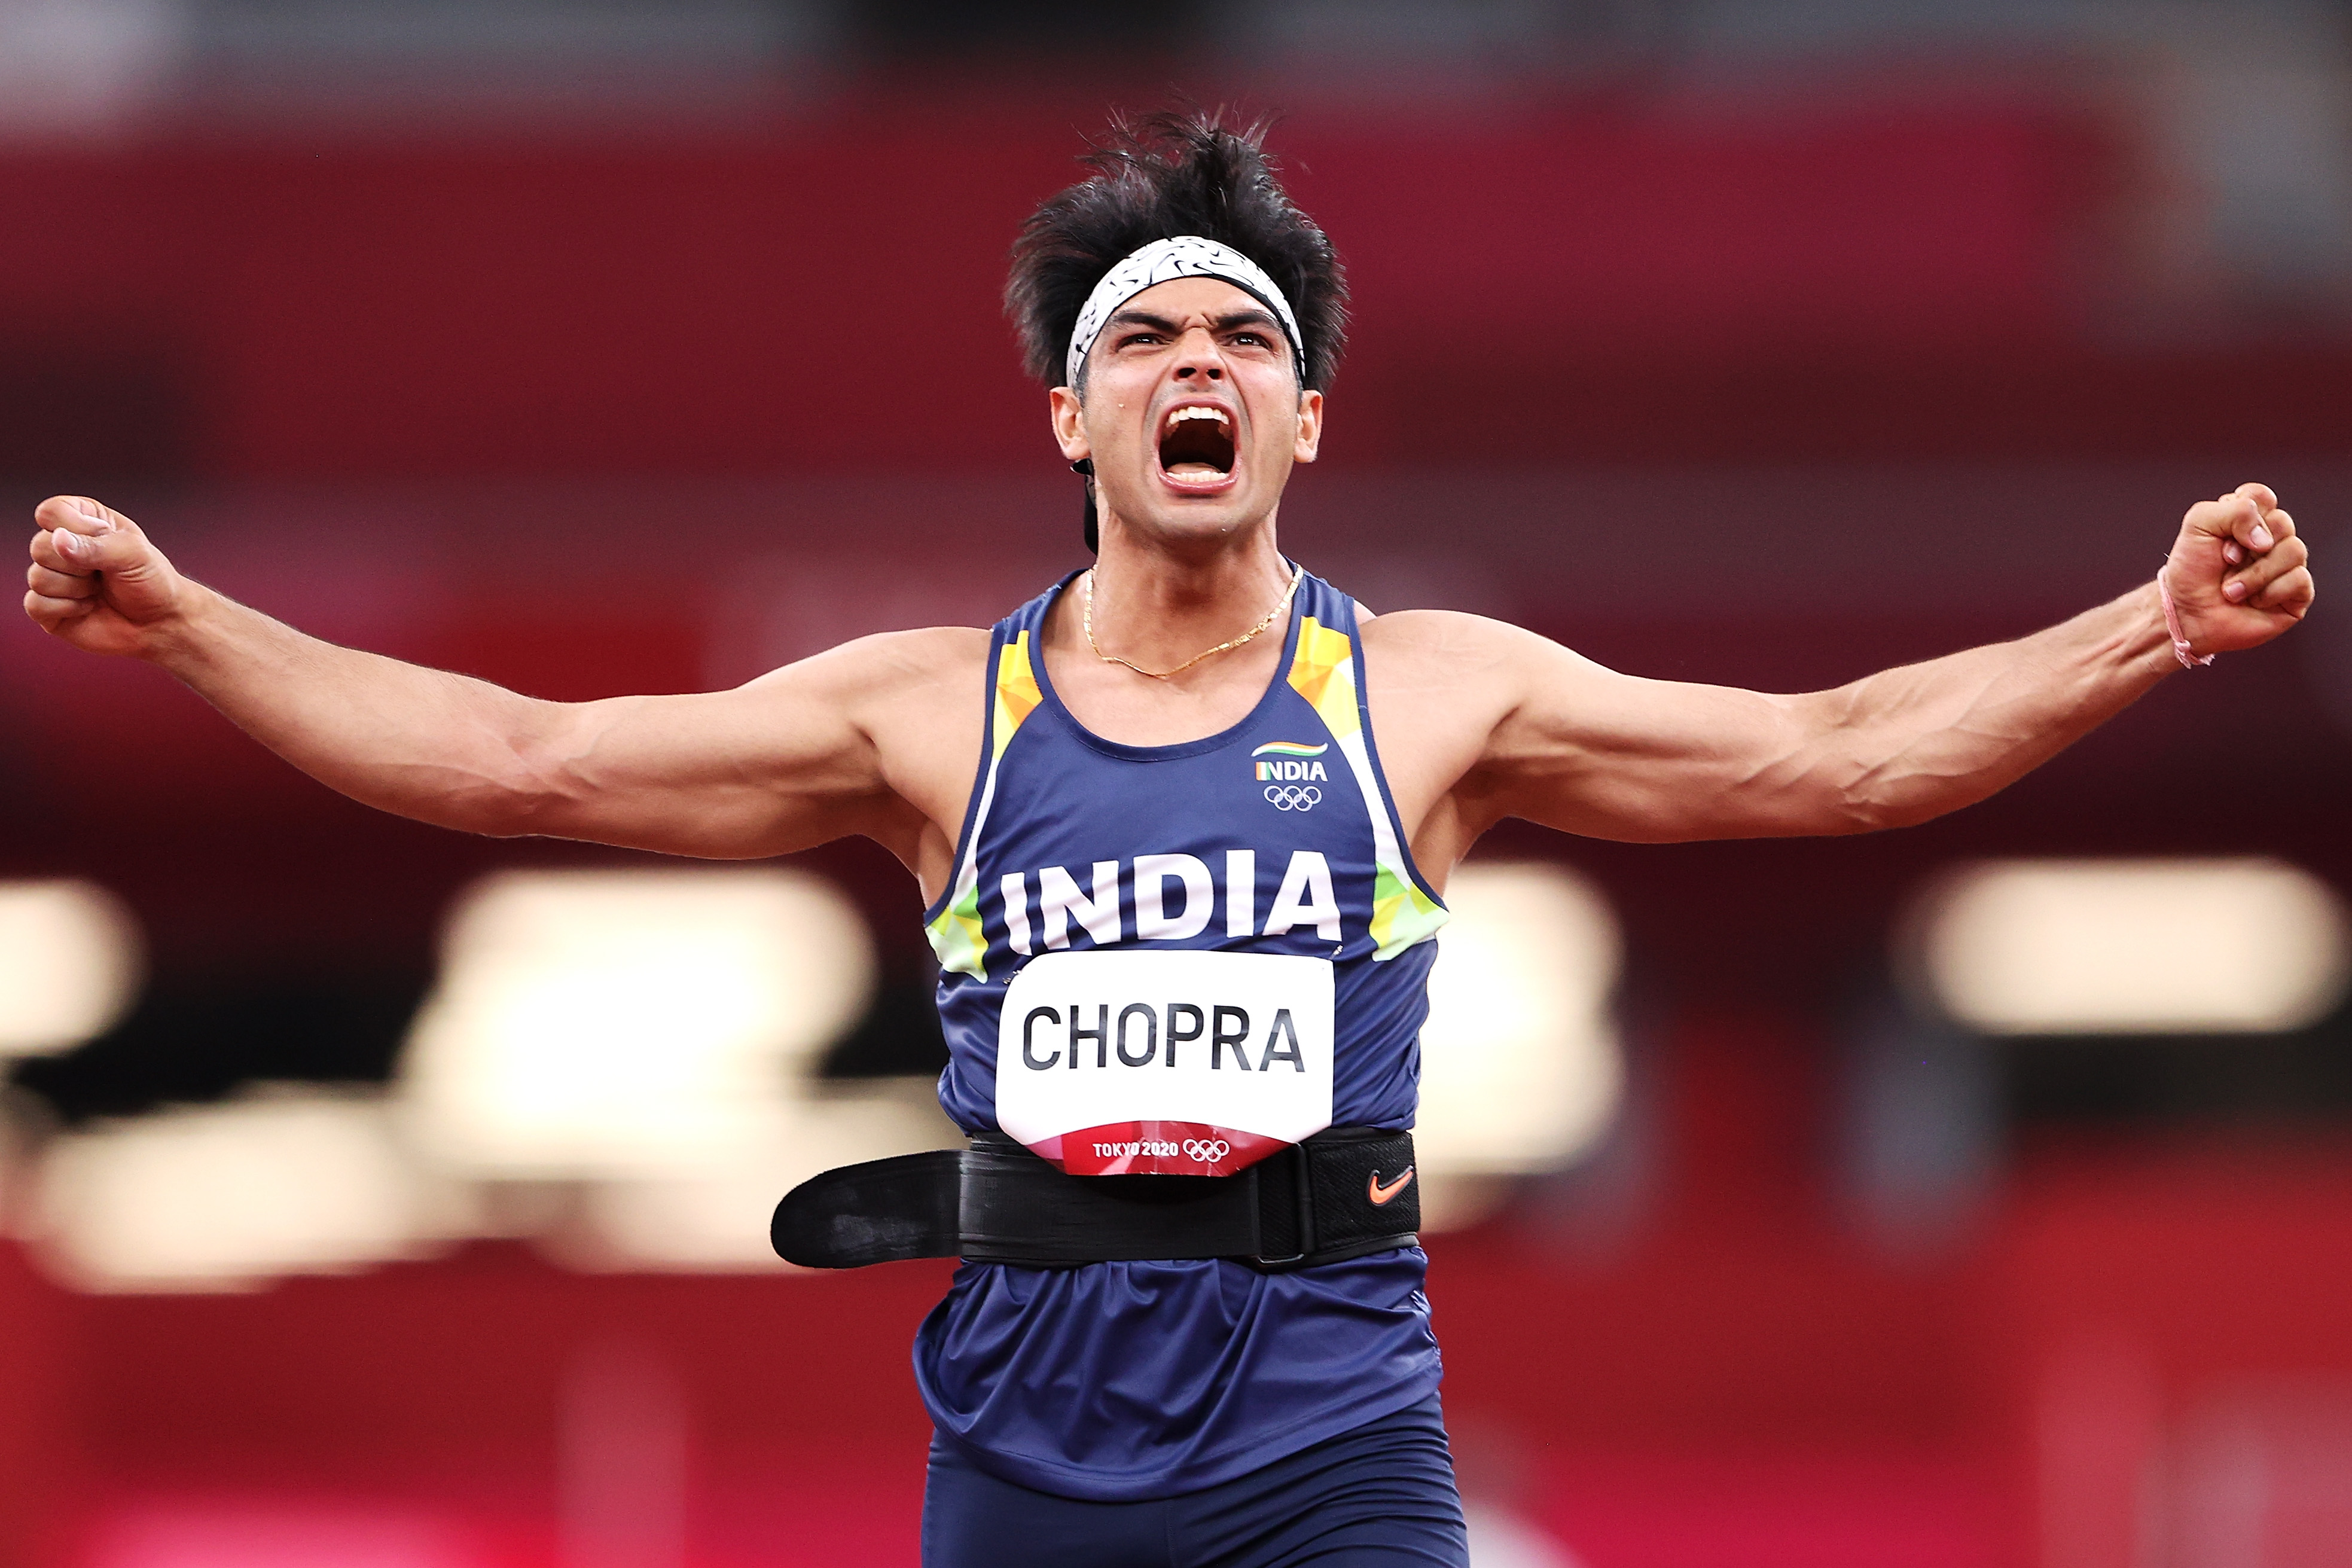 Javelin thrower Neeraj Chopra becomes first Indian to win Olympic Gold in Athletics, seventh medal for India in Tokyo Olympics- the country's highest ever